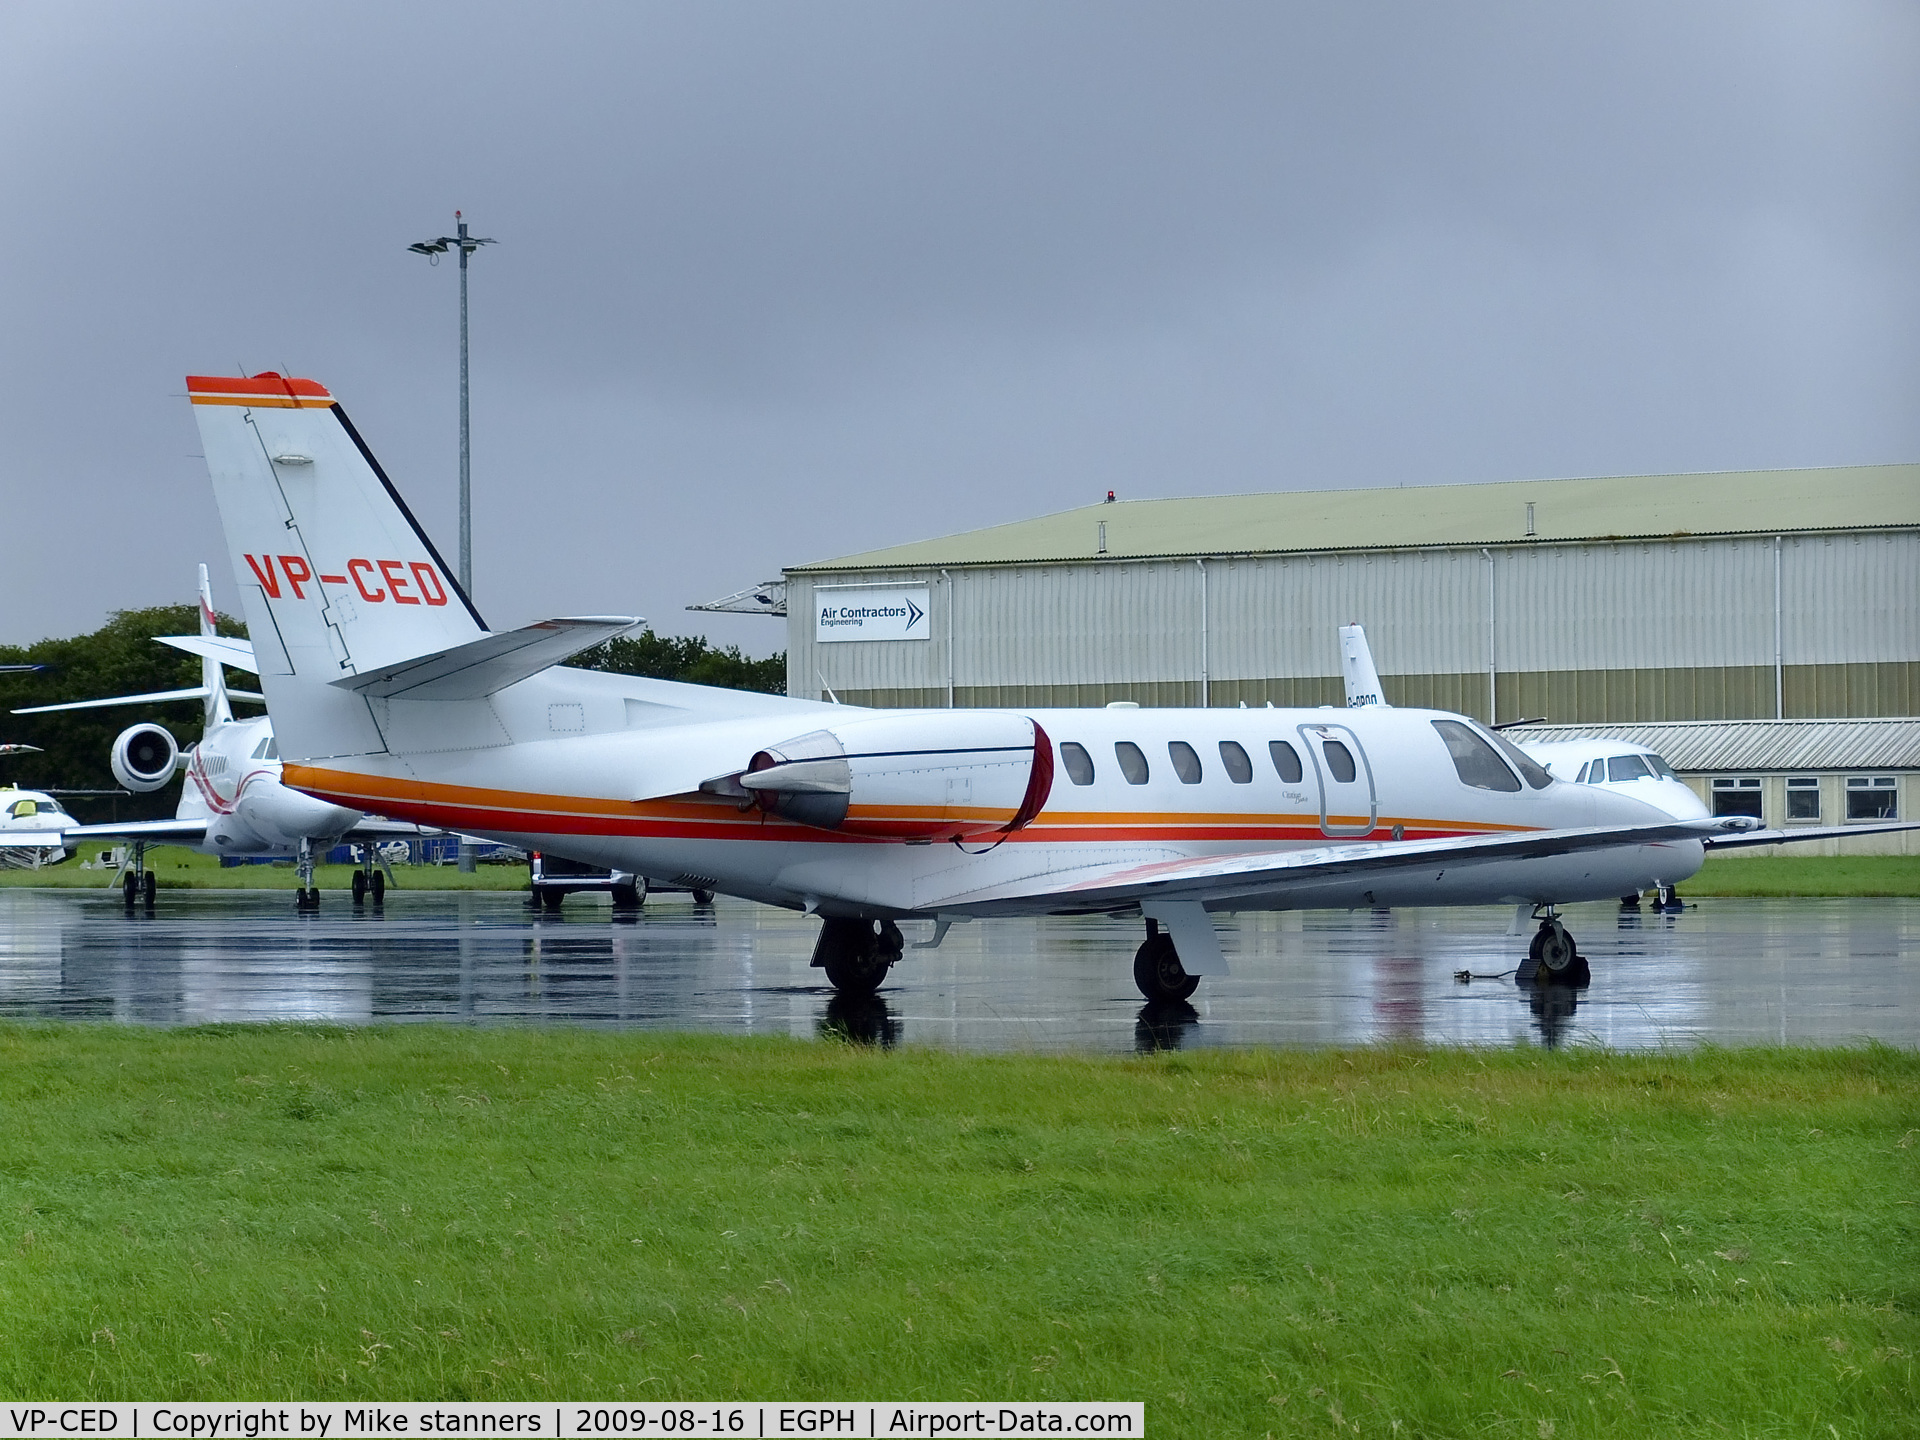 VP-CED, 1999 Cessna 550 Citation Bravo C/N 550-0870, cessna 550 citation bravo ,owned by Iceland,is seen here at a wet EDI